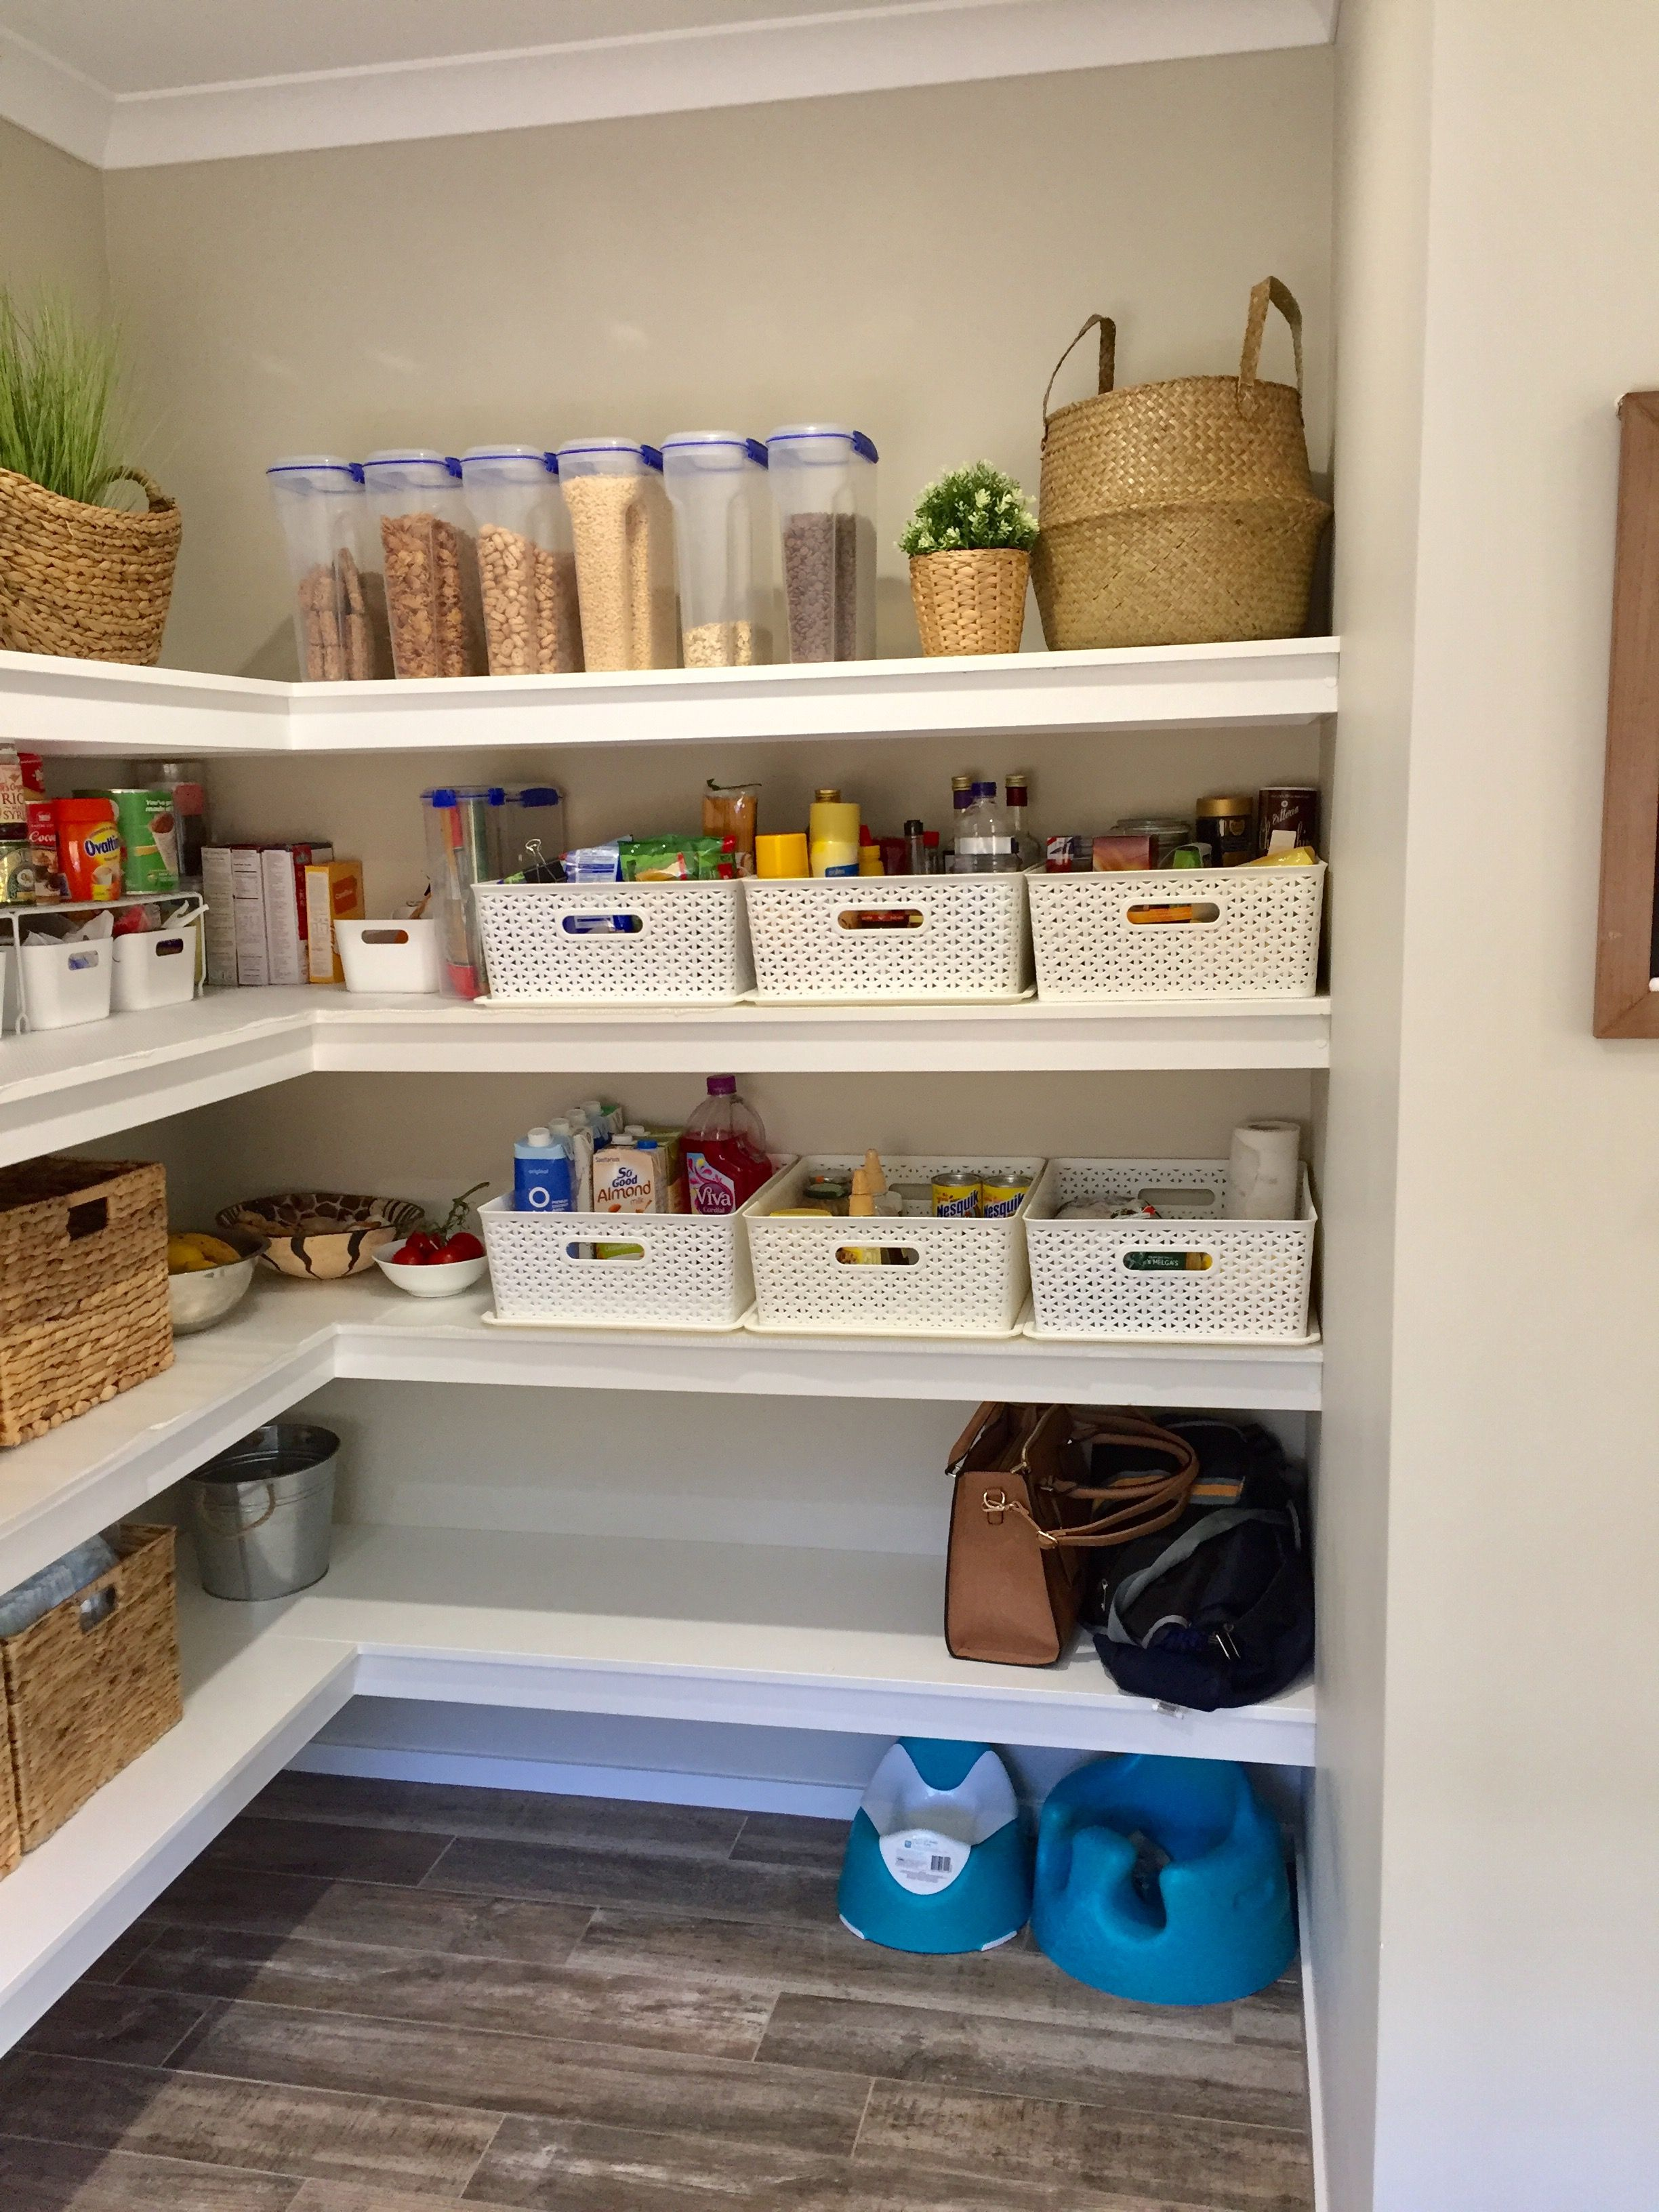 Pantry Pantry Organisation Butlers Pantry Easy To Achieve Organisation Using Sistema Container Kitchen Organization Pantry Pantry Layout Pantry Organisation